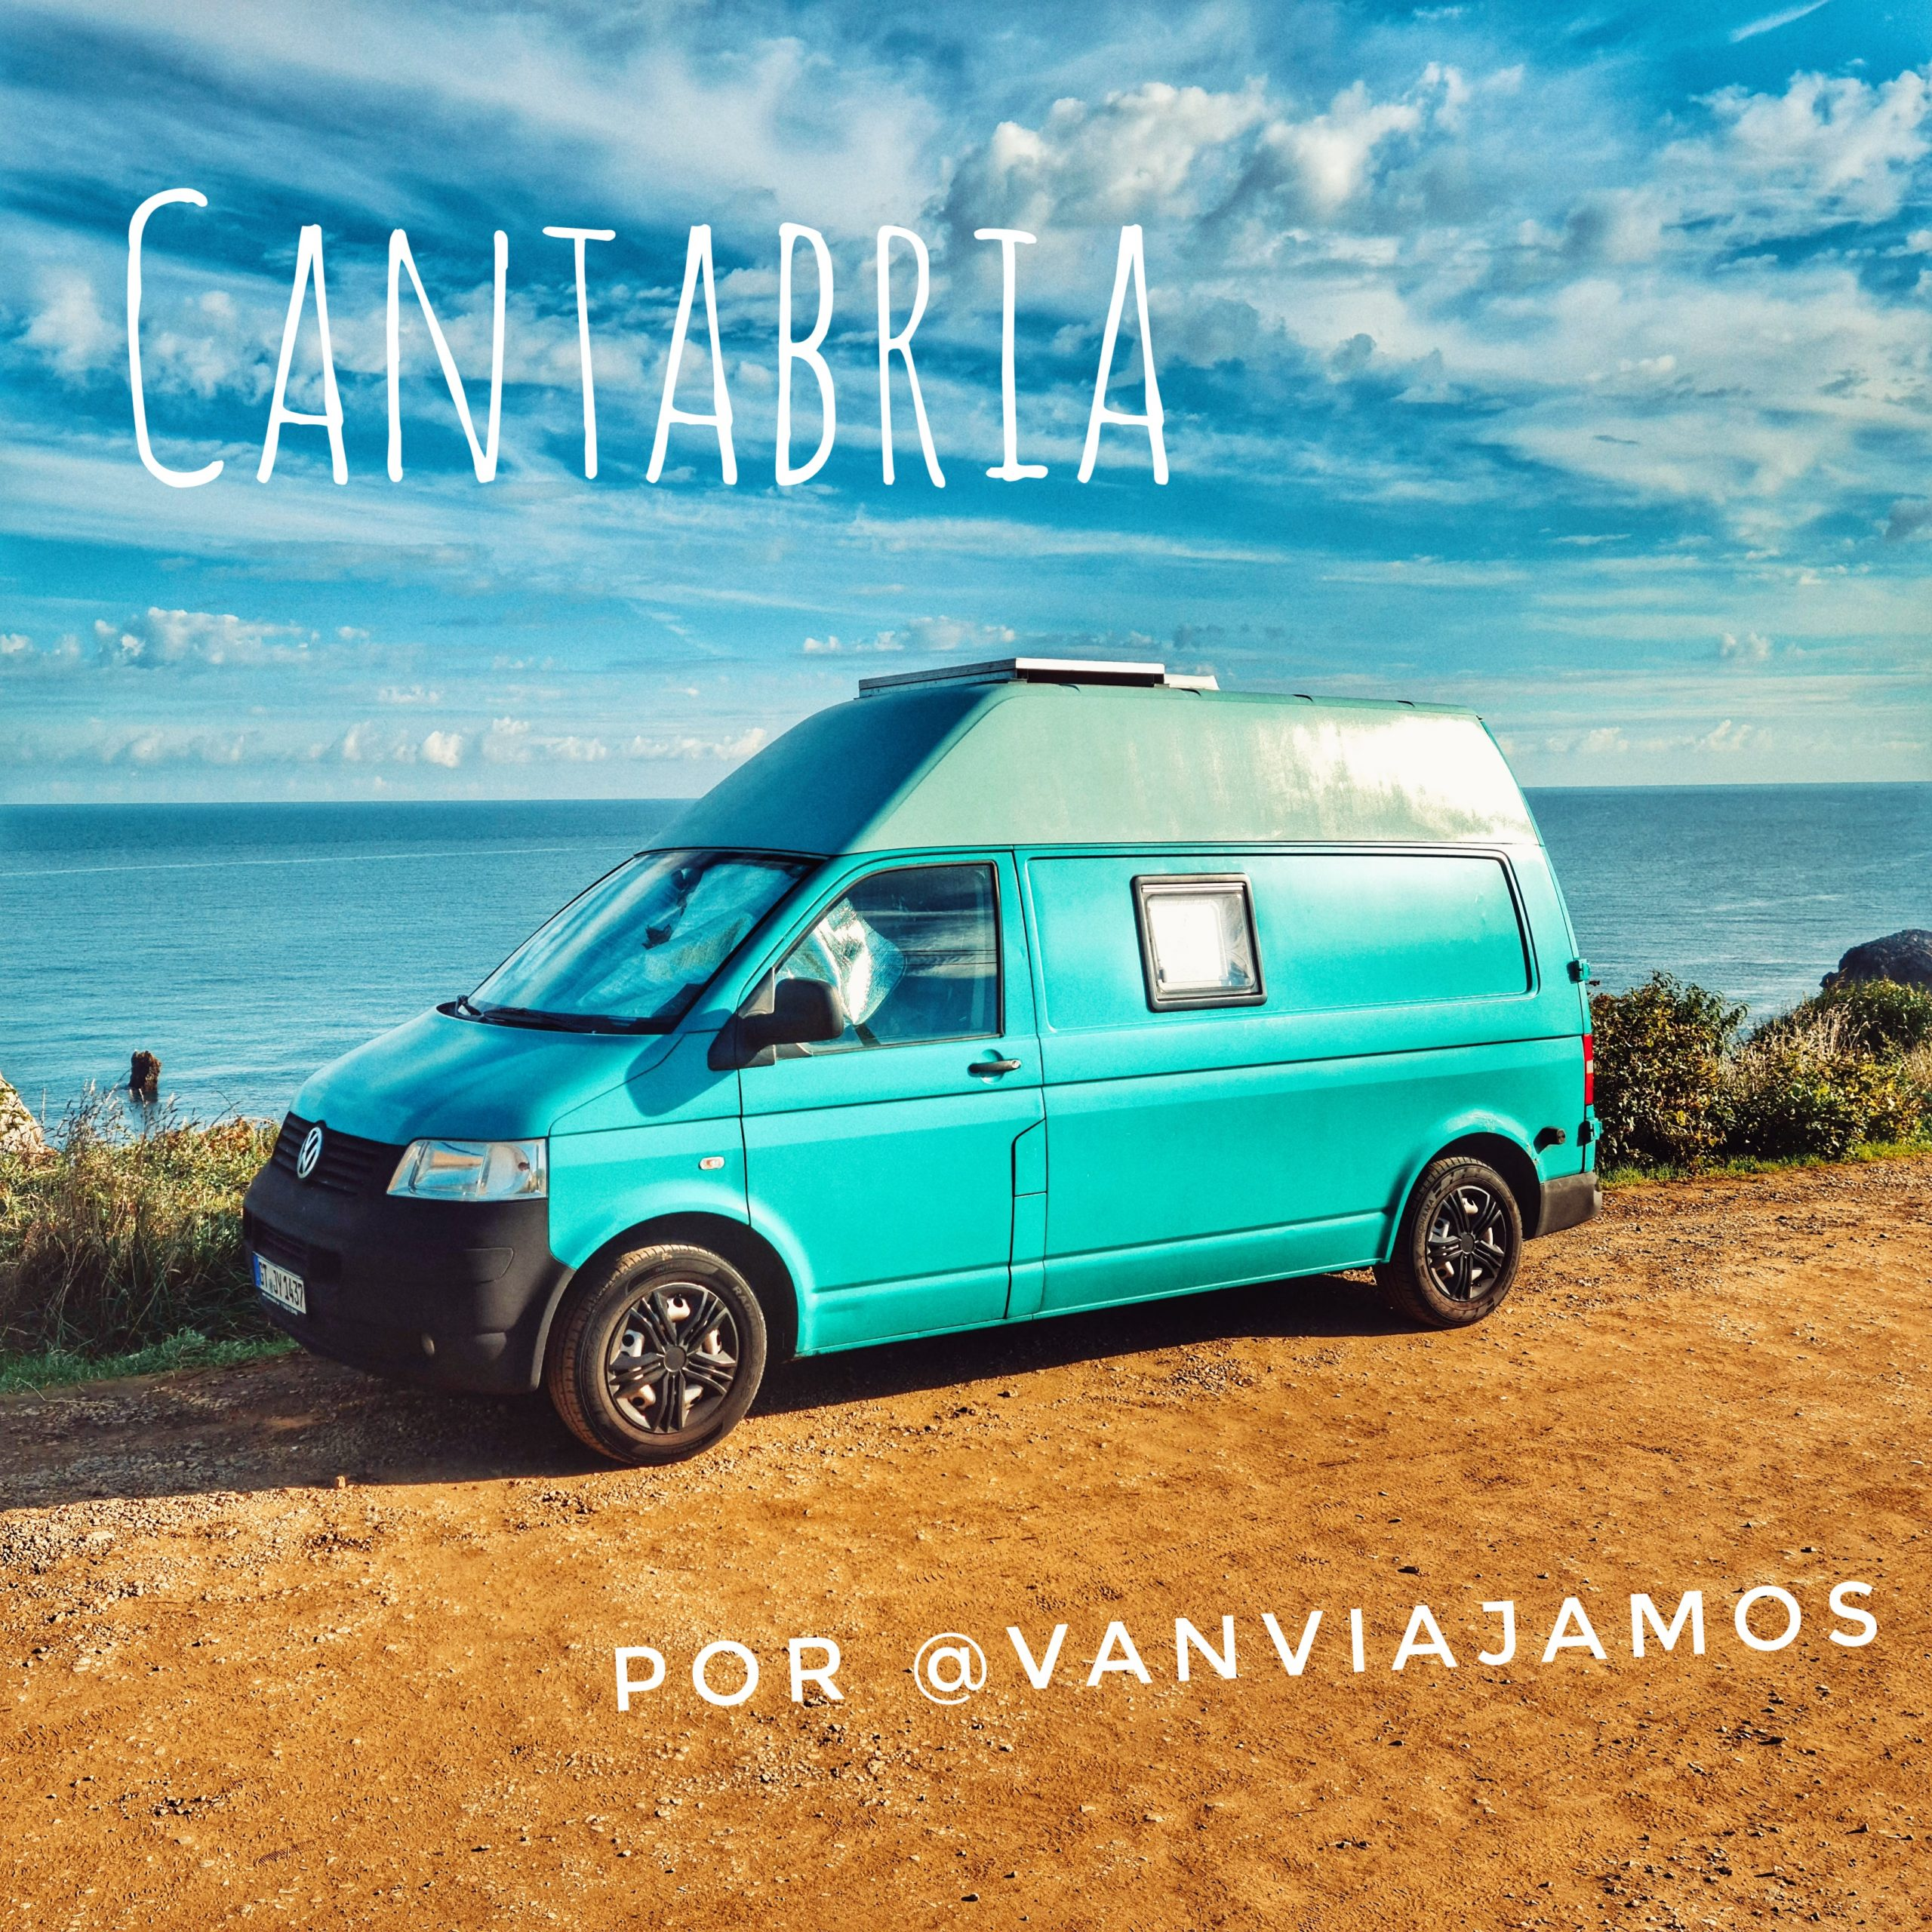 Read more about the article Getaway through 2 of the best beaches in Cantabria by camper by @vanviagamos